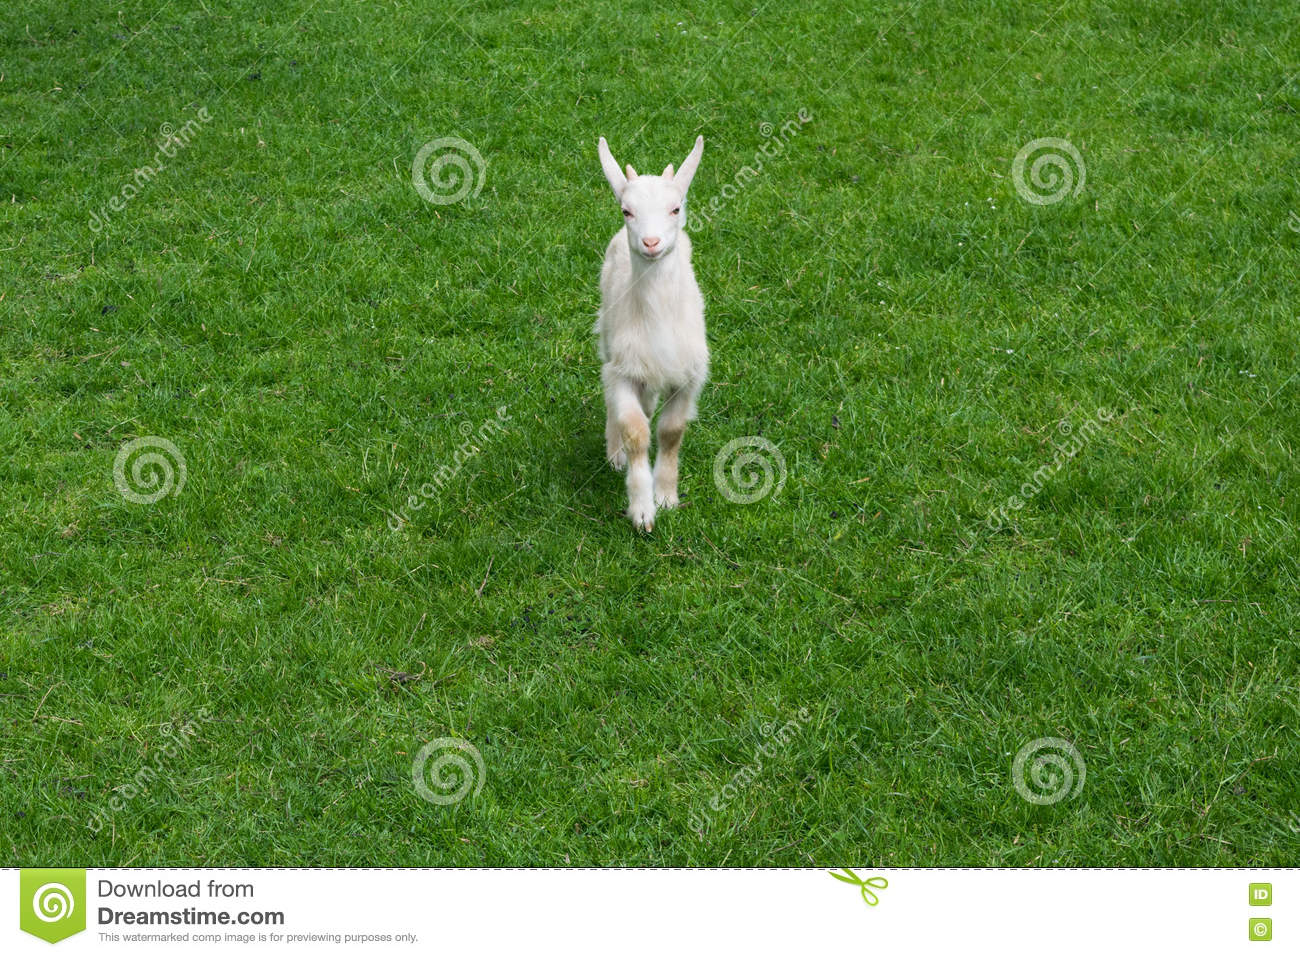 Cute baby goat goatling young green meadow grass front